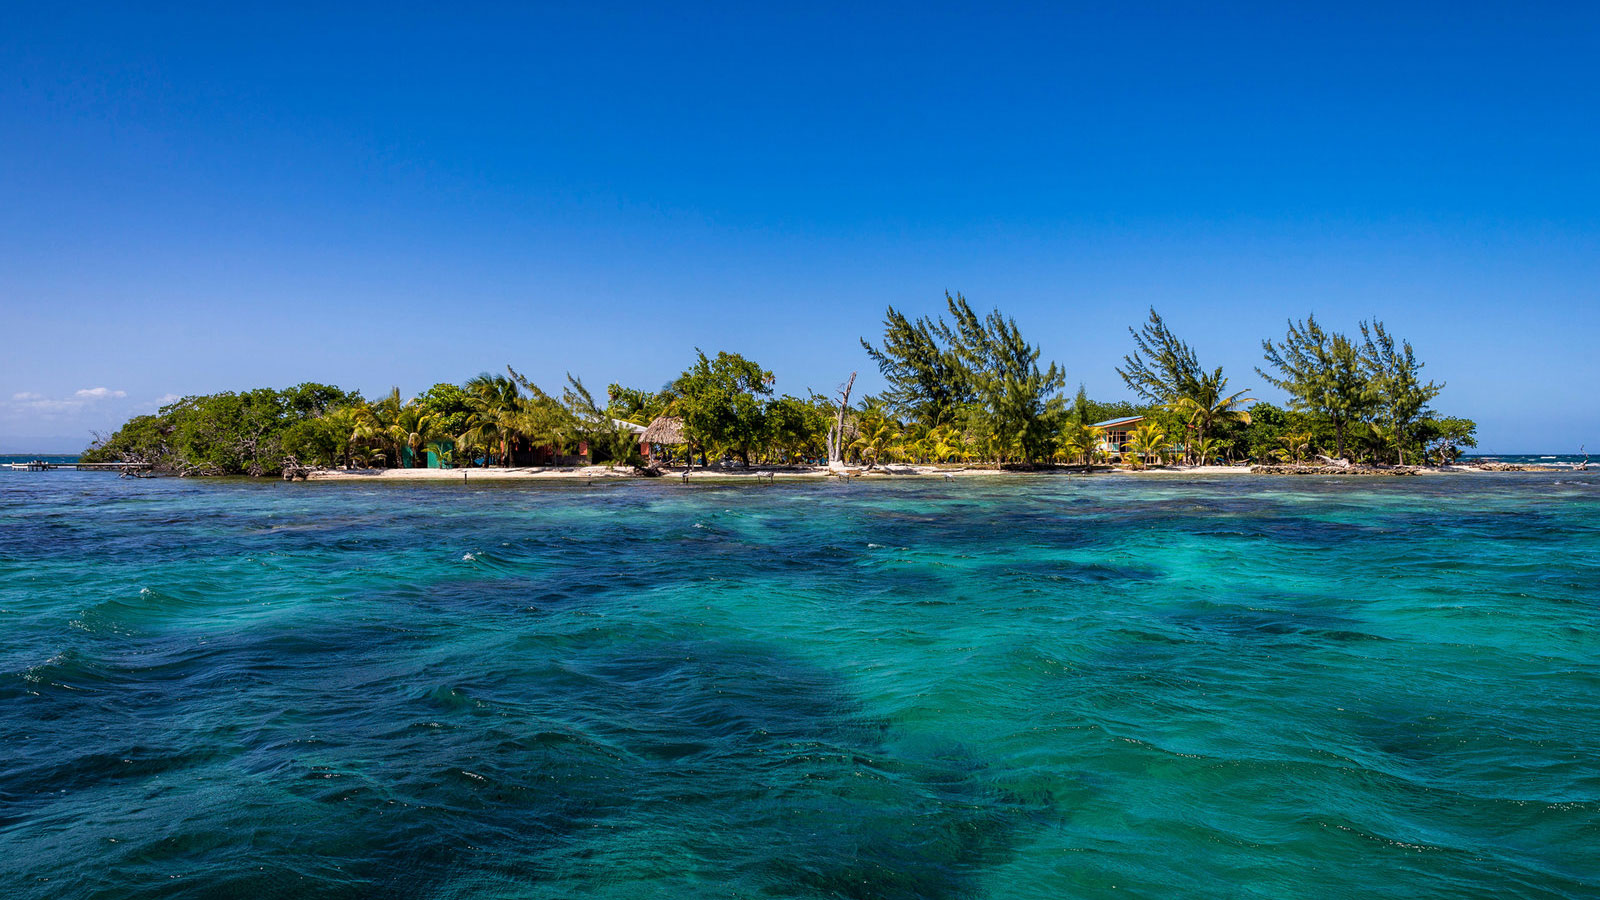 Francis Ford Coppola's Private Island is Taking Reservations